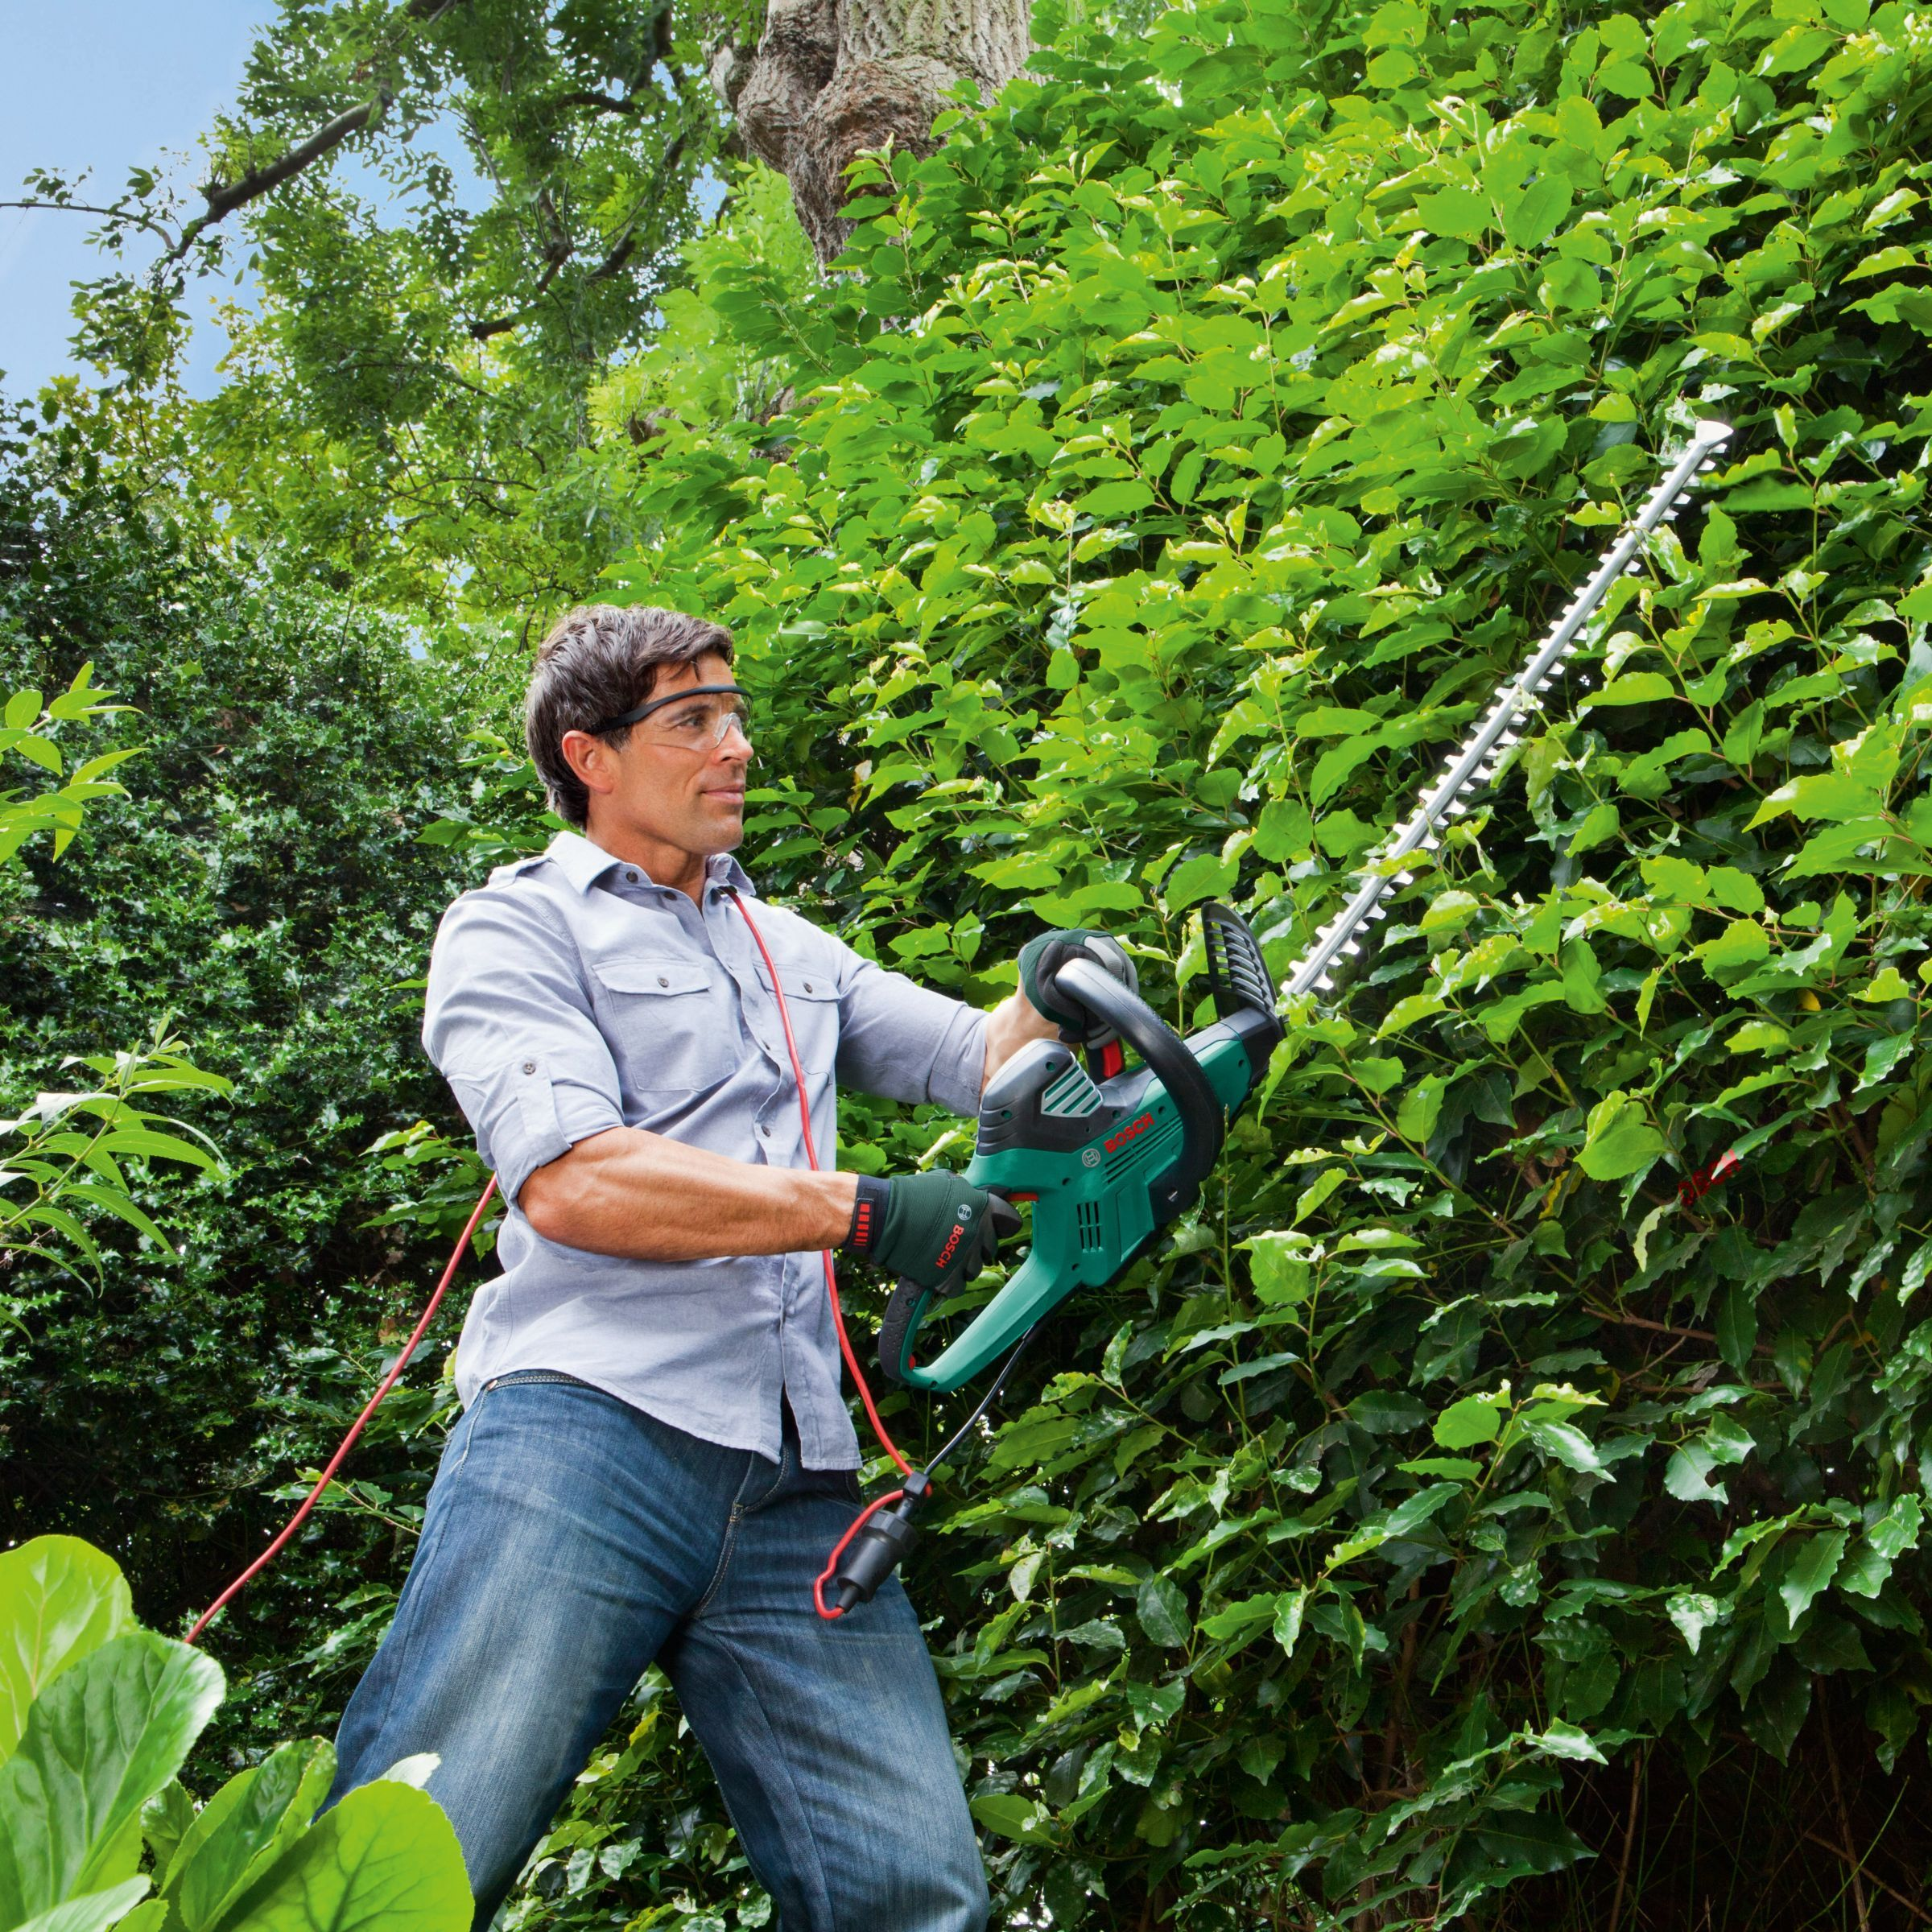 Bosch Ahs 70 34 Hedge Cutter In 2020 Hedge Cutter Hedges Bosch